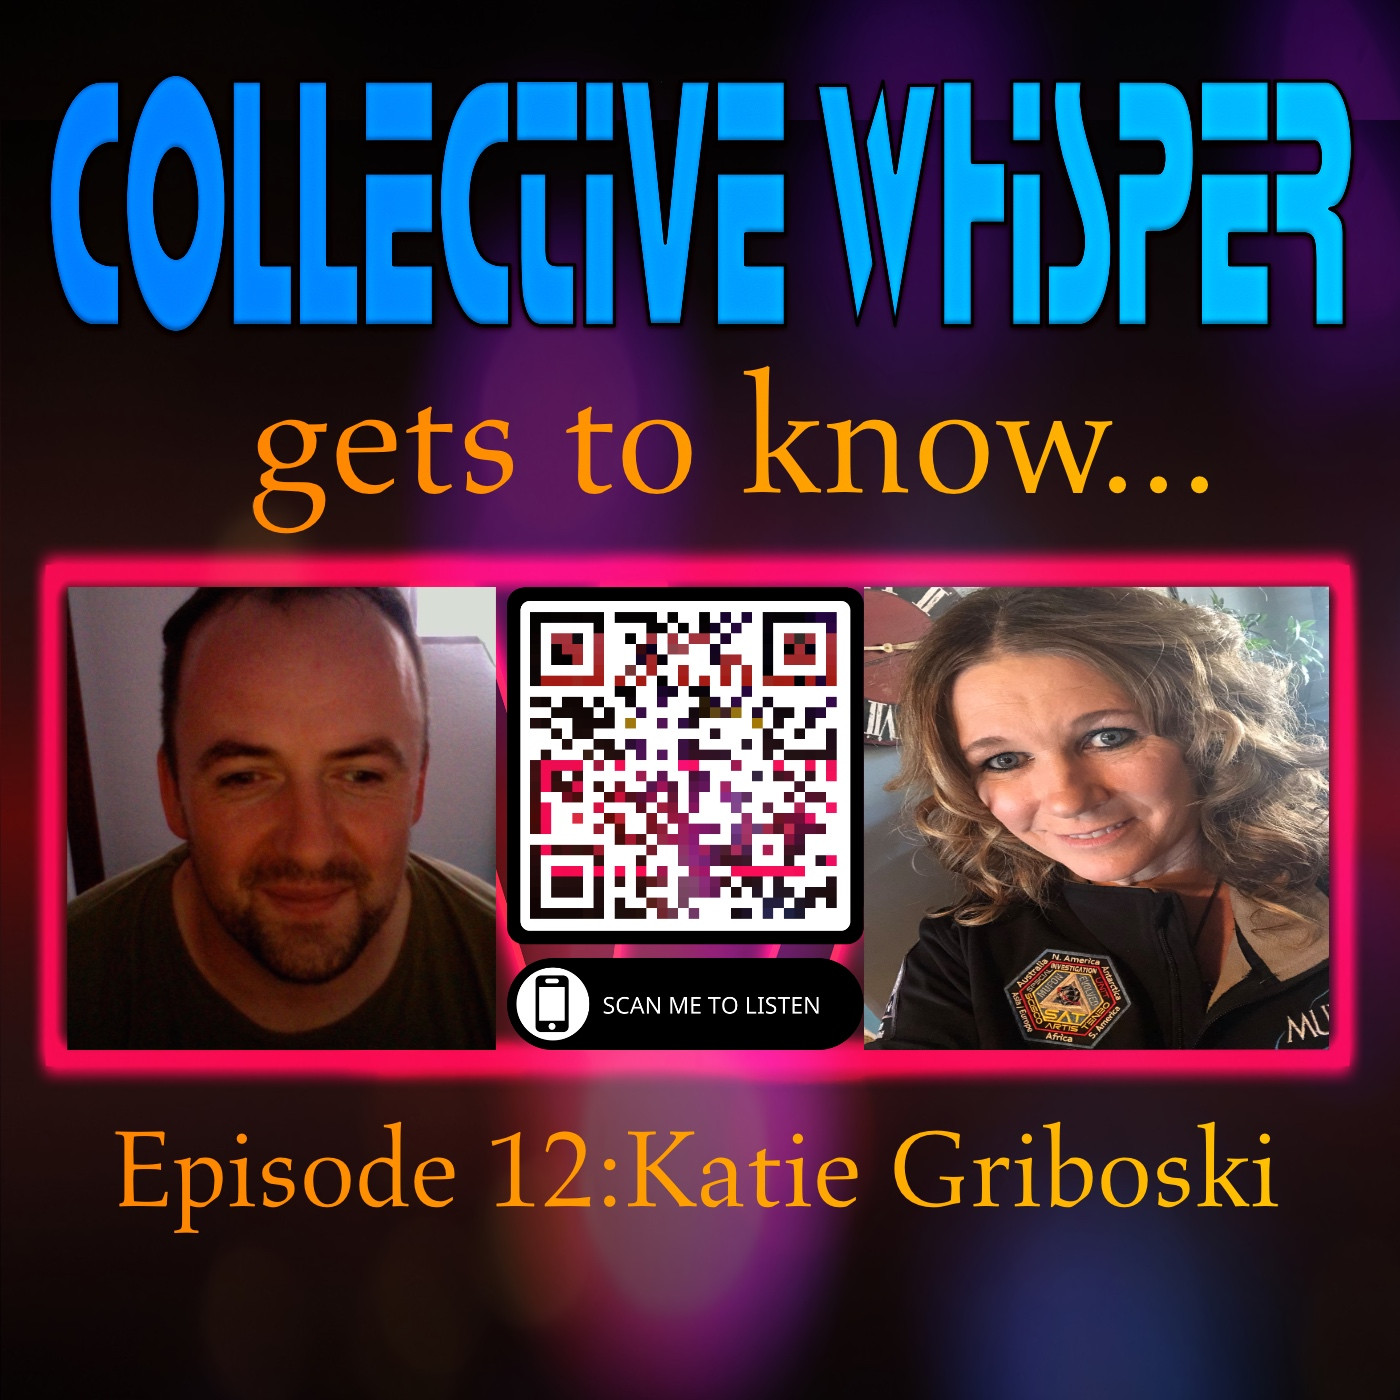 Collective Whisper gets to know.......Katie Griboski